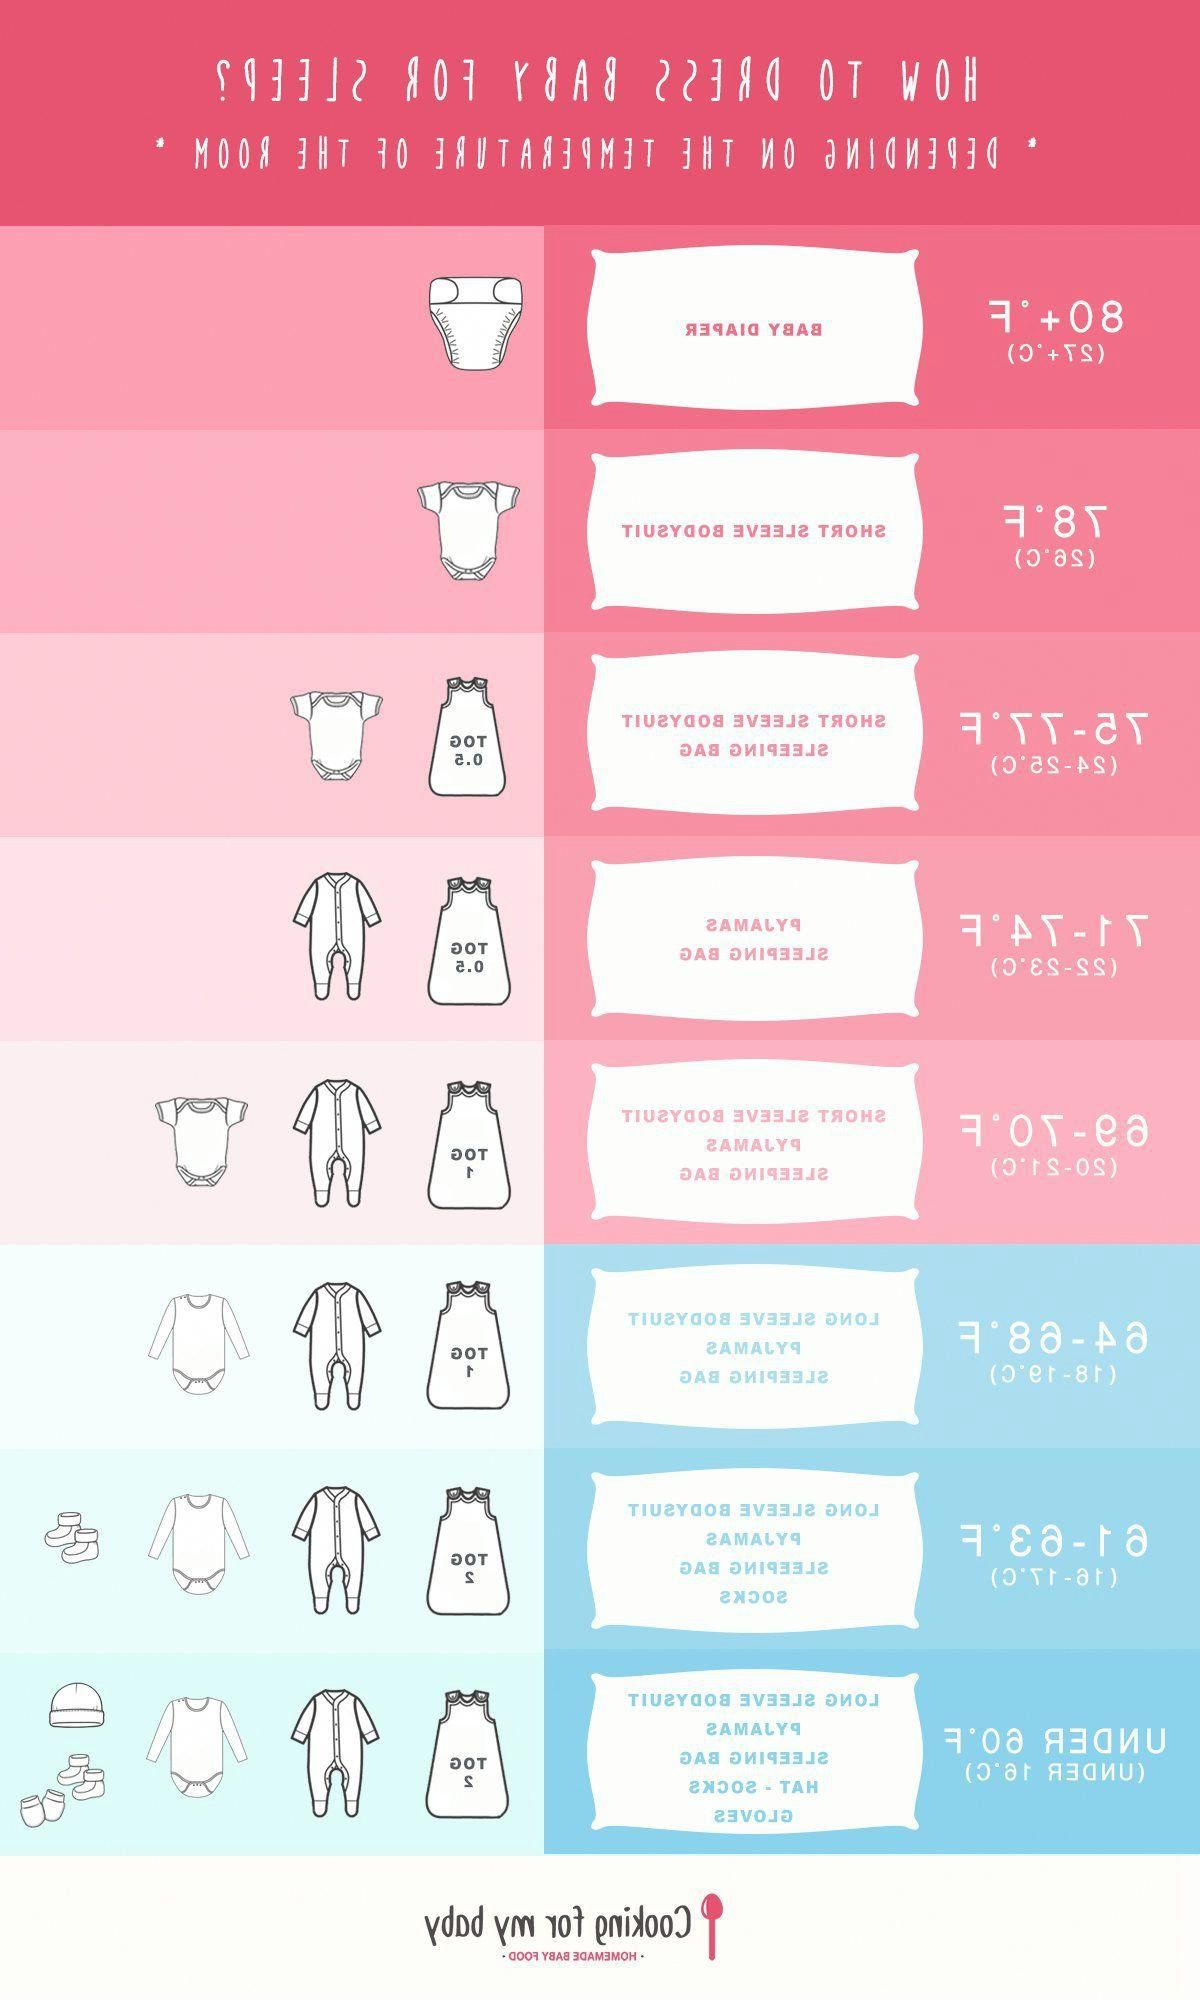 How To Dress Baby For Sleep At Night Depending On The Temperature Of The Room Babies Kids Sleep Baby Room Sleep